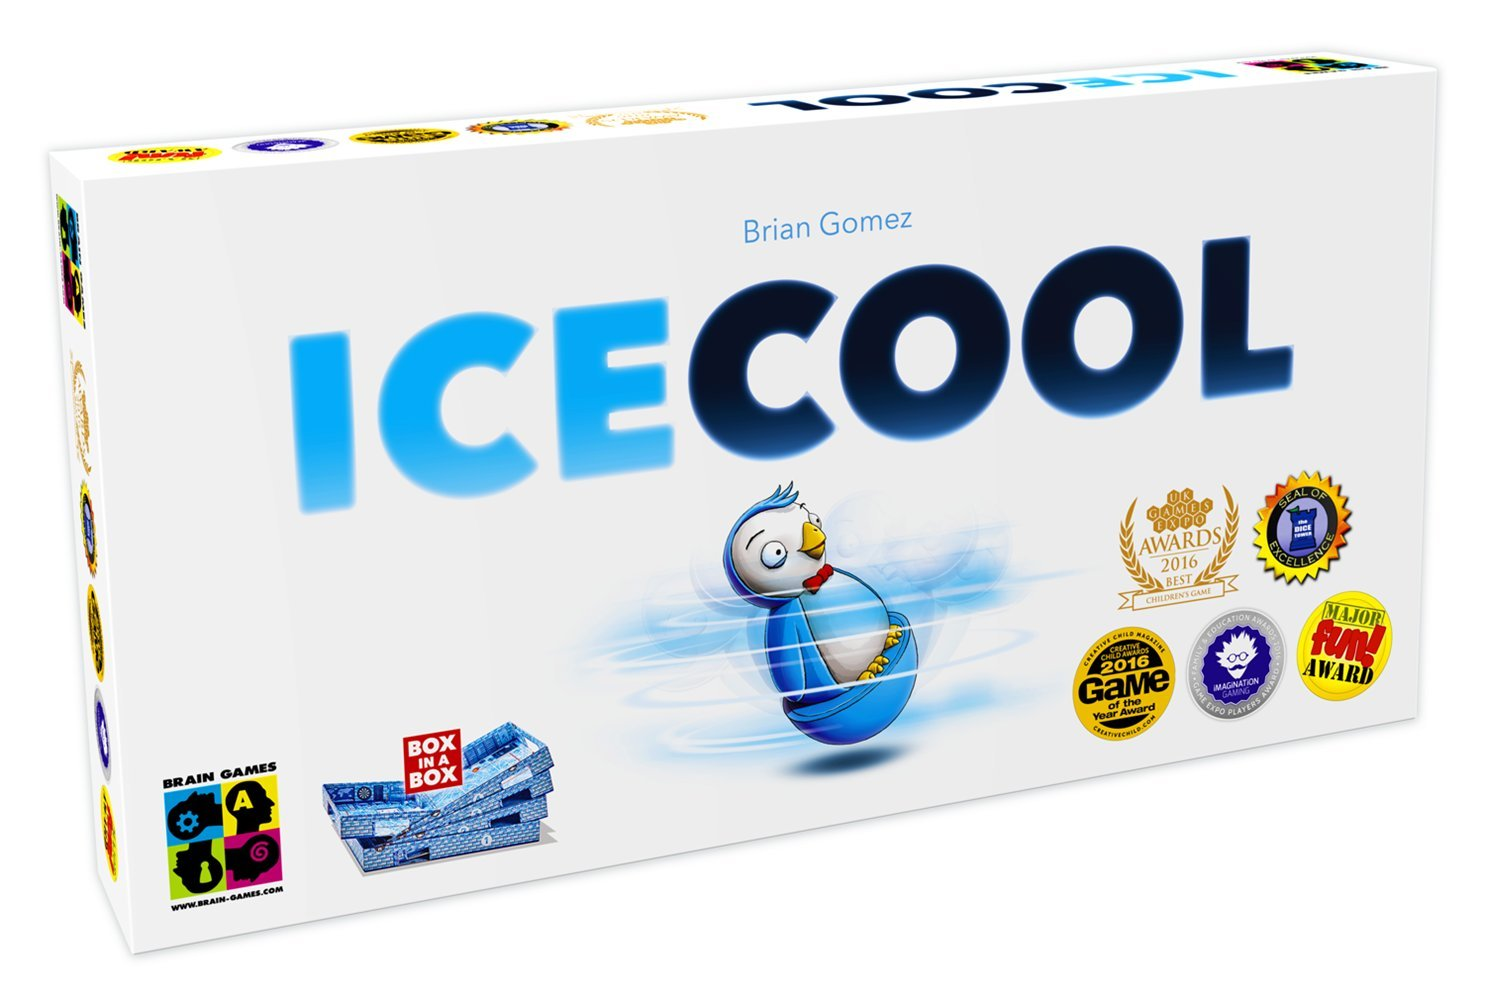 Brain Games Ice Cool Family Board Game